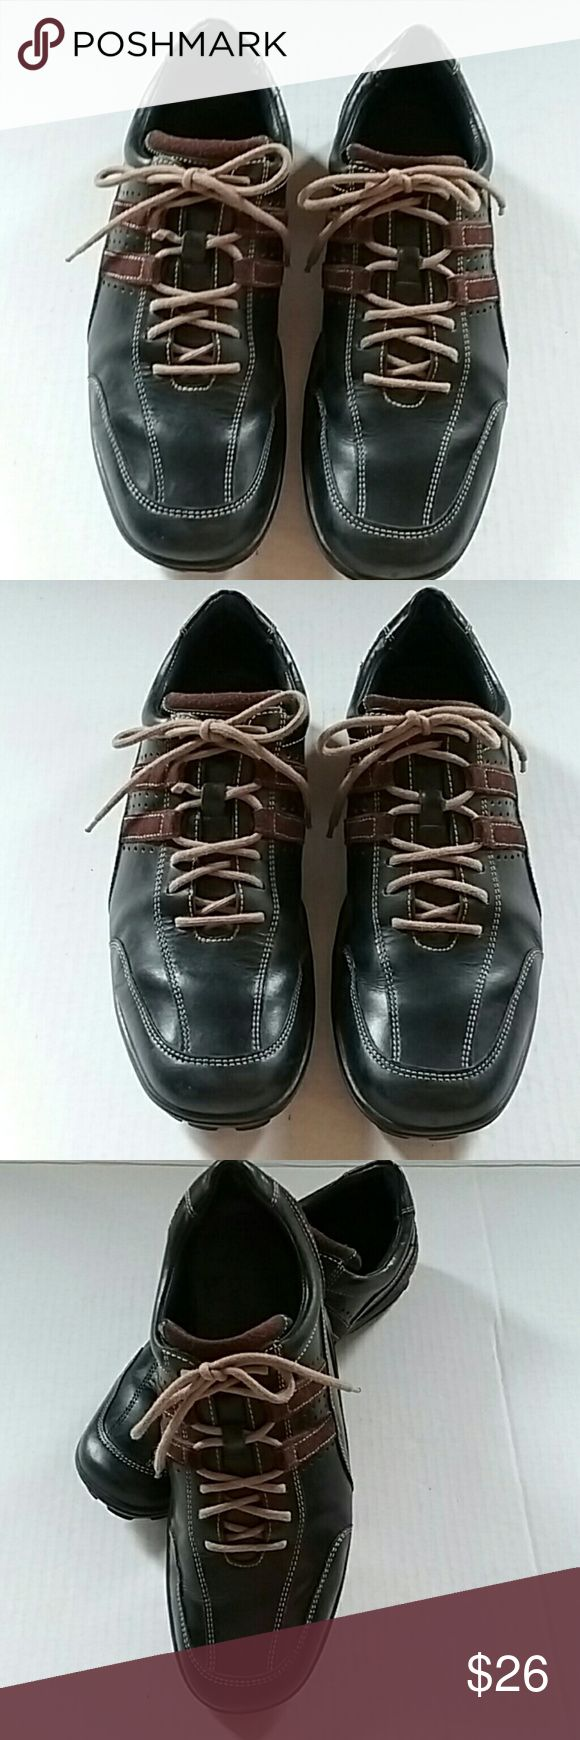 Cole Haan Mens BLK/BRN LEATHER lace oxford shoes This is a pair of Cole Haan black with brown stripe leather Oxford lace up shoes. They are size 9.5. They have Vibram soles and are an excellent preowned condition. Cole Haan Shoes Oxfords & Derbys